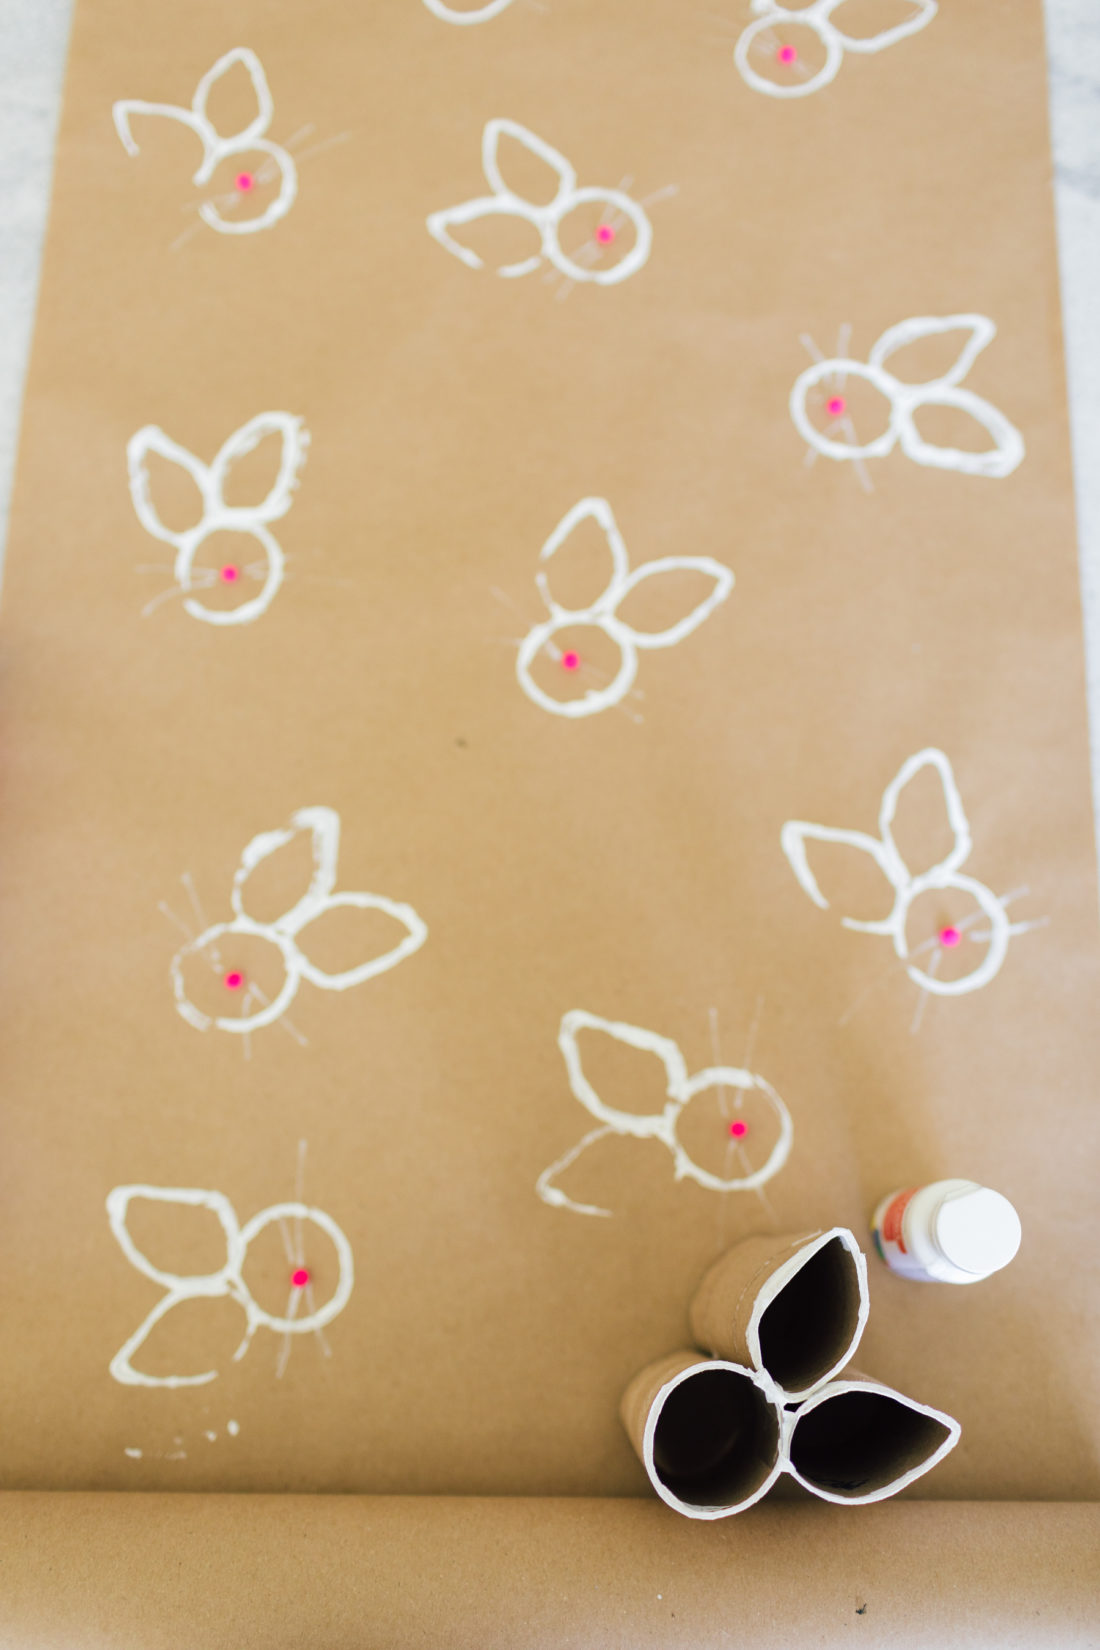 Eva Amurri Martino stamps bunnies onto wrapping paper for Easter